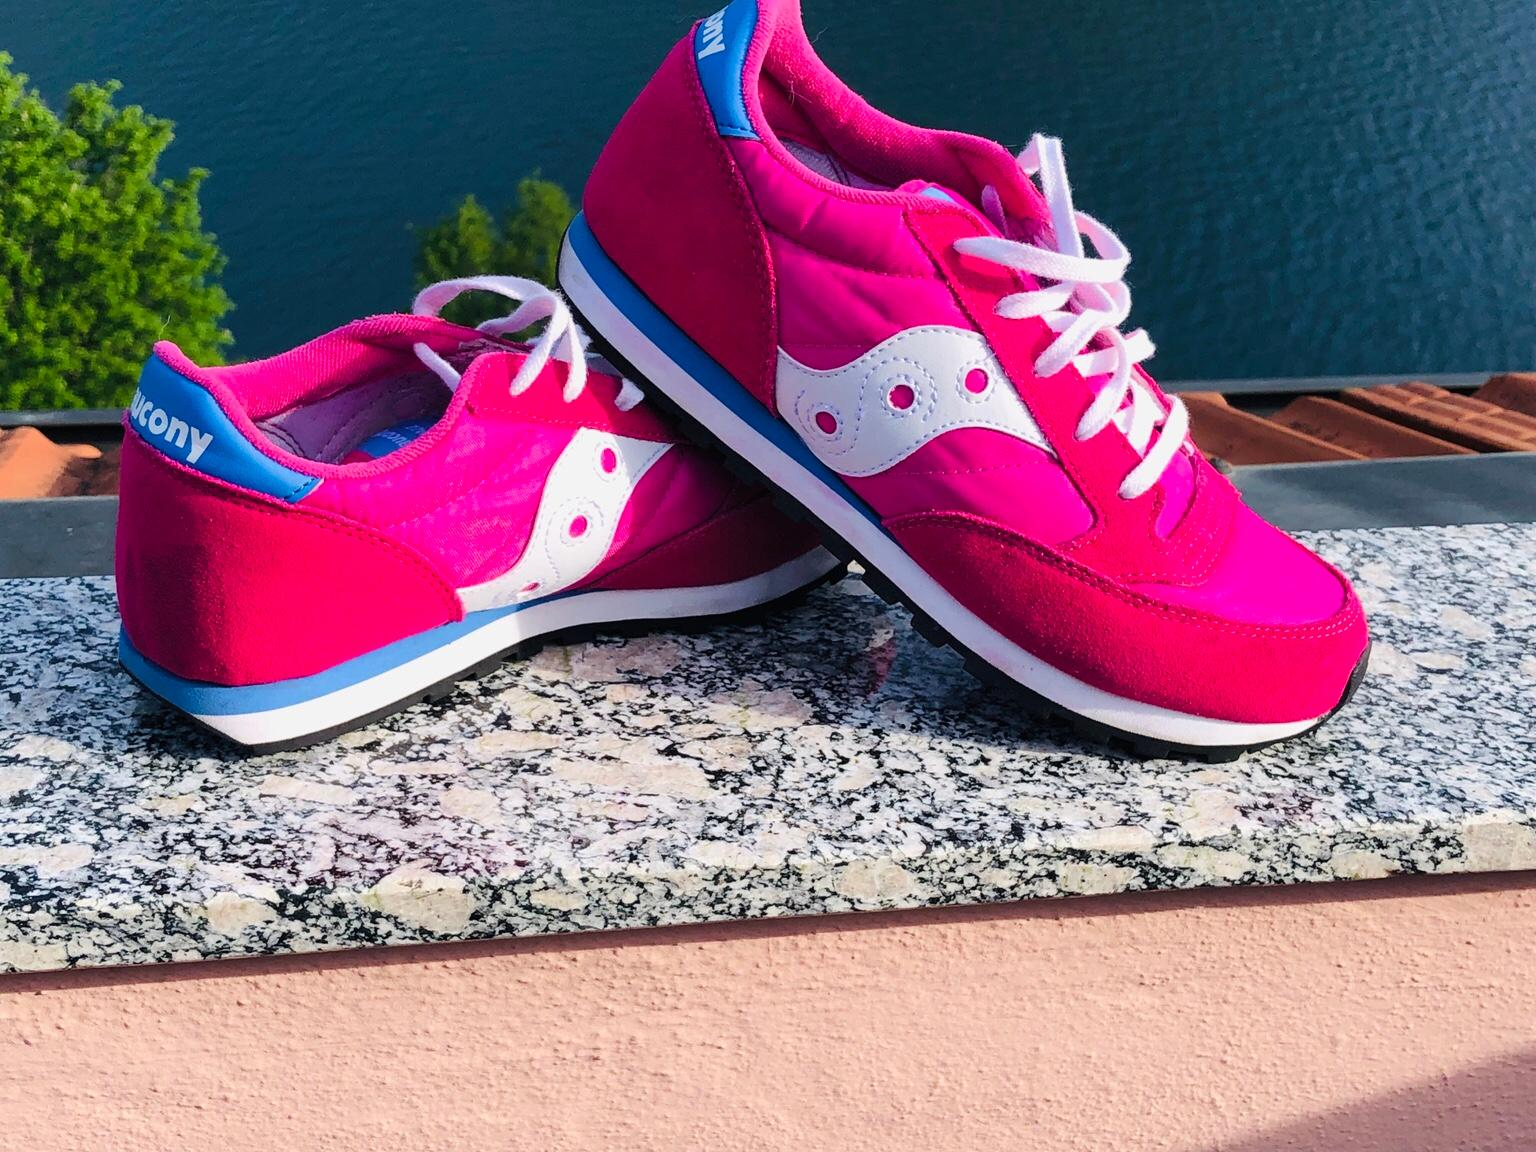 SAUCONY JAZZ RED NUOVE ! in 22020 Torno for €60.00 for sale